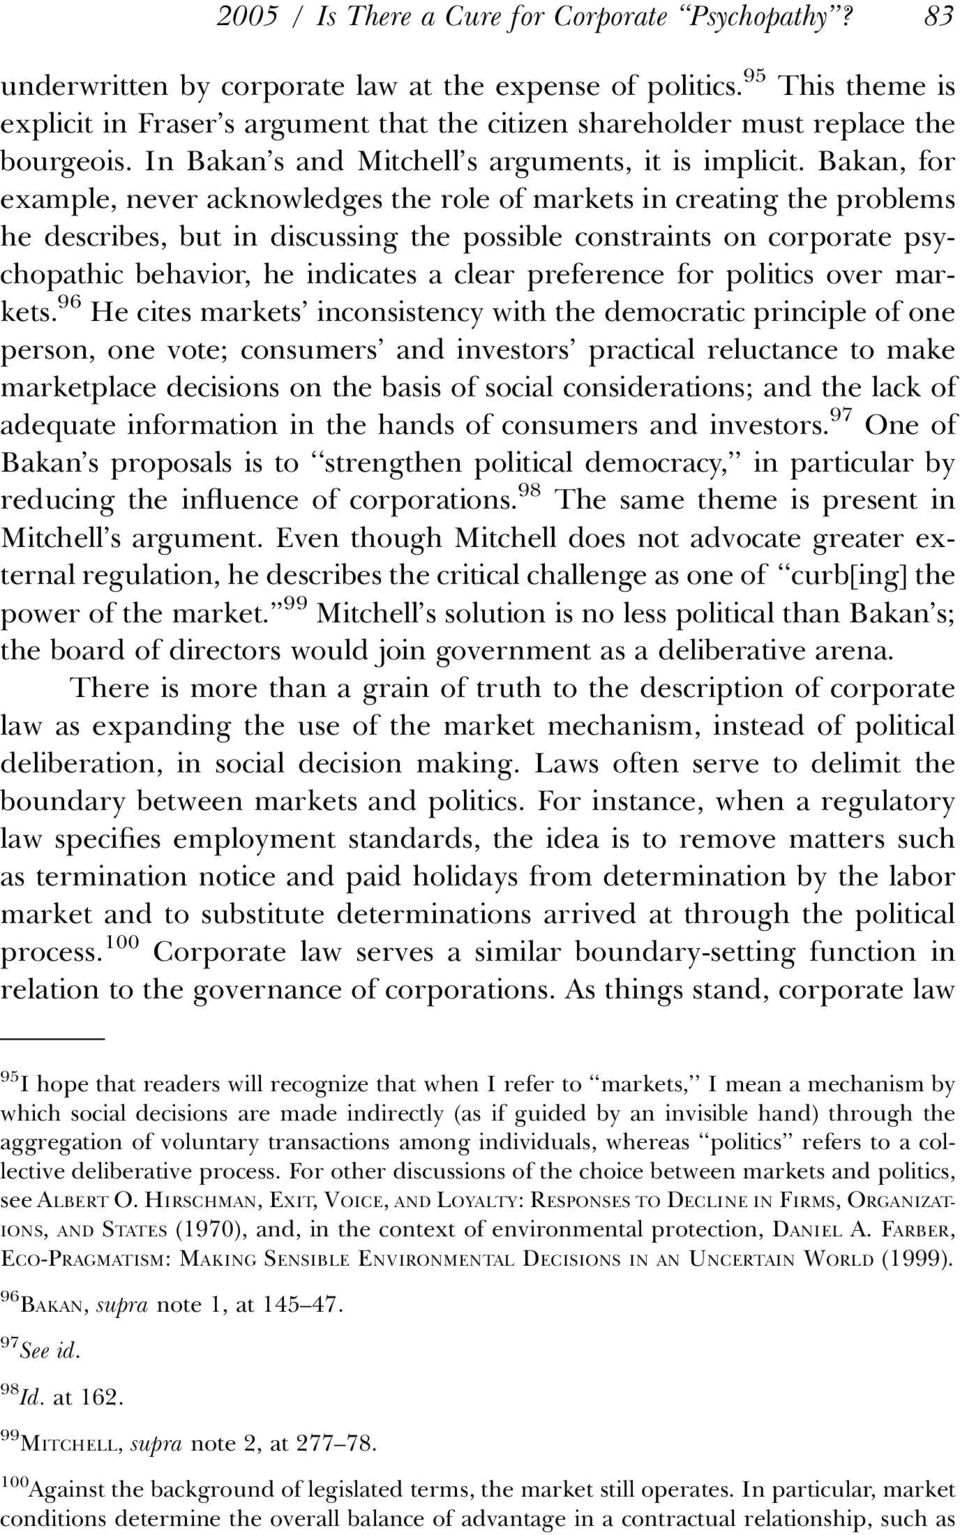 Bakan, for example, never acknowledges the role of markets in creating the problems he describes, but in discussing the possible constraints on corporate psychopathic behavior, he indicates a clear